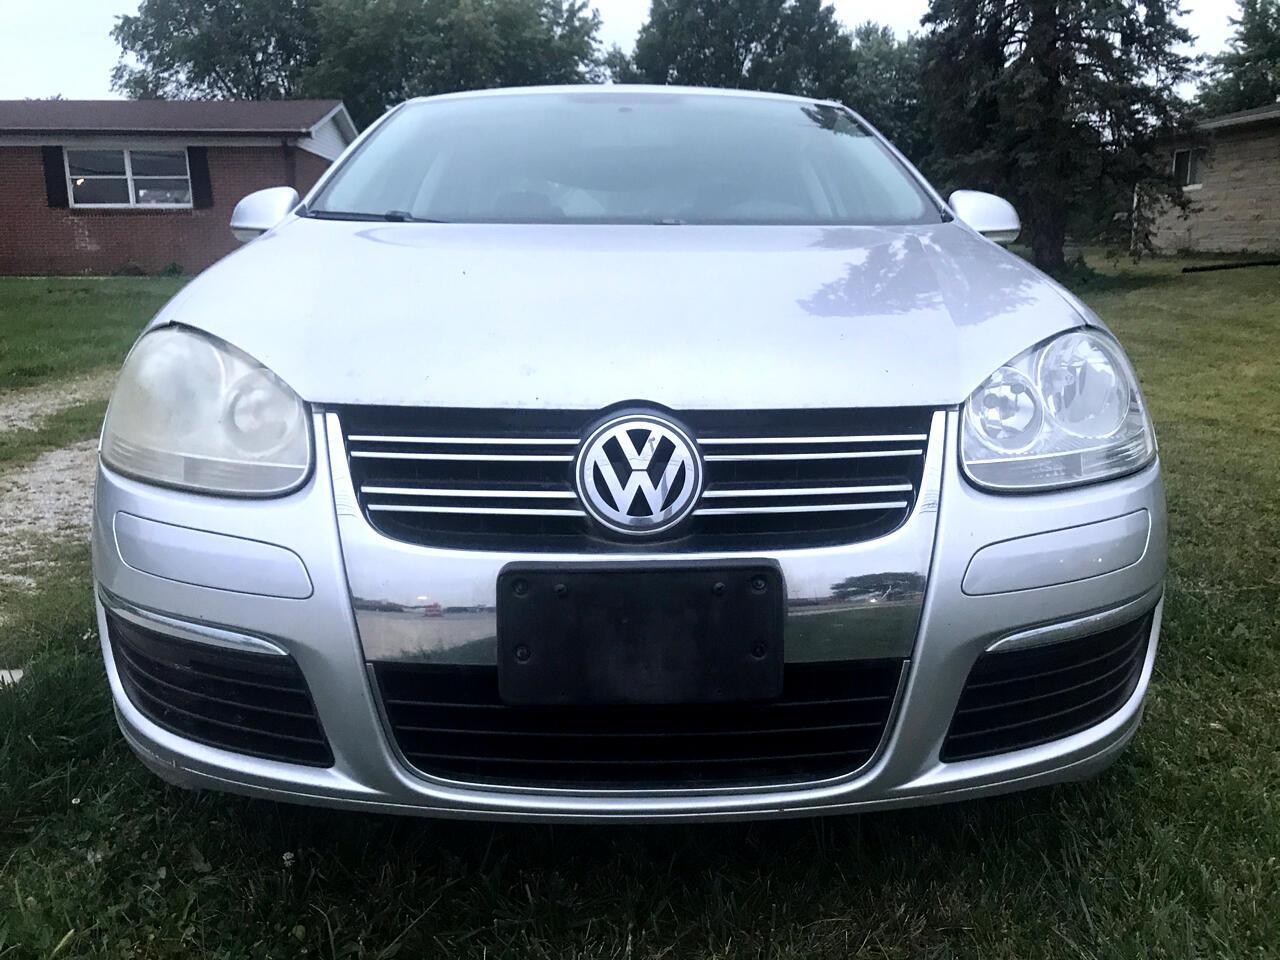 2007 Volkswagen Jetta (CC-1389266) for sale in Greenfield, Indiana